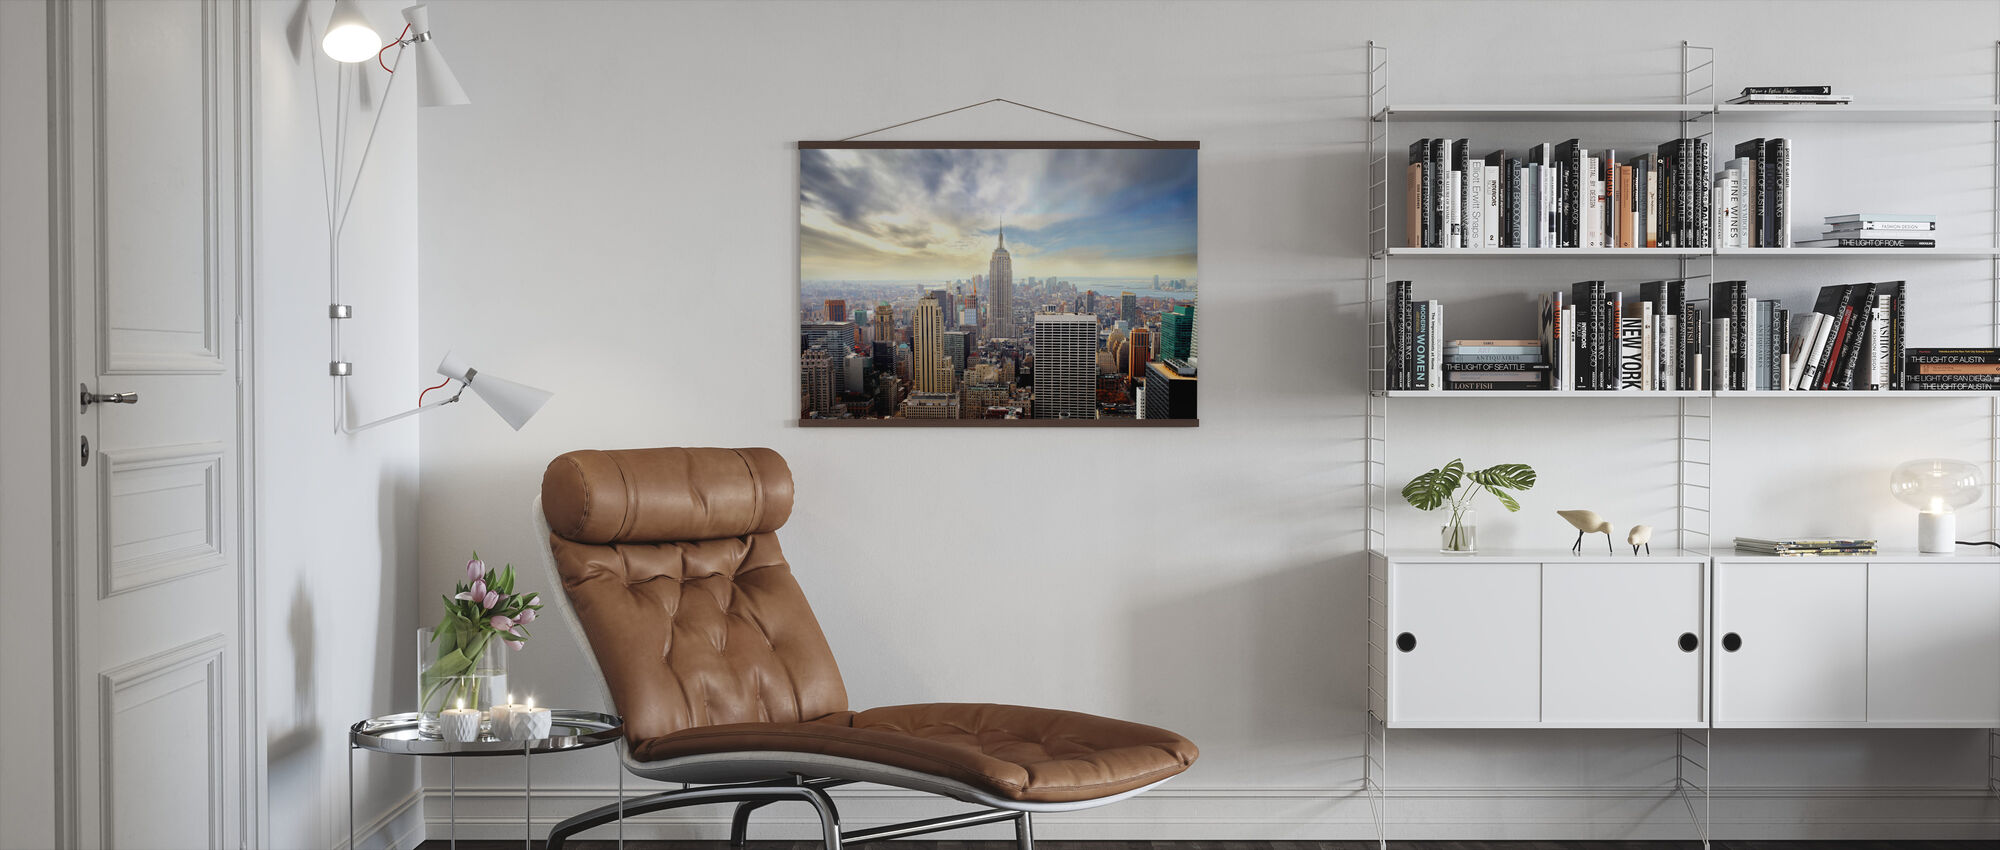 Enchanting New York - Poster - Living Room